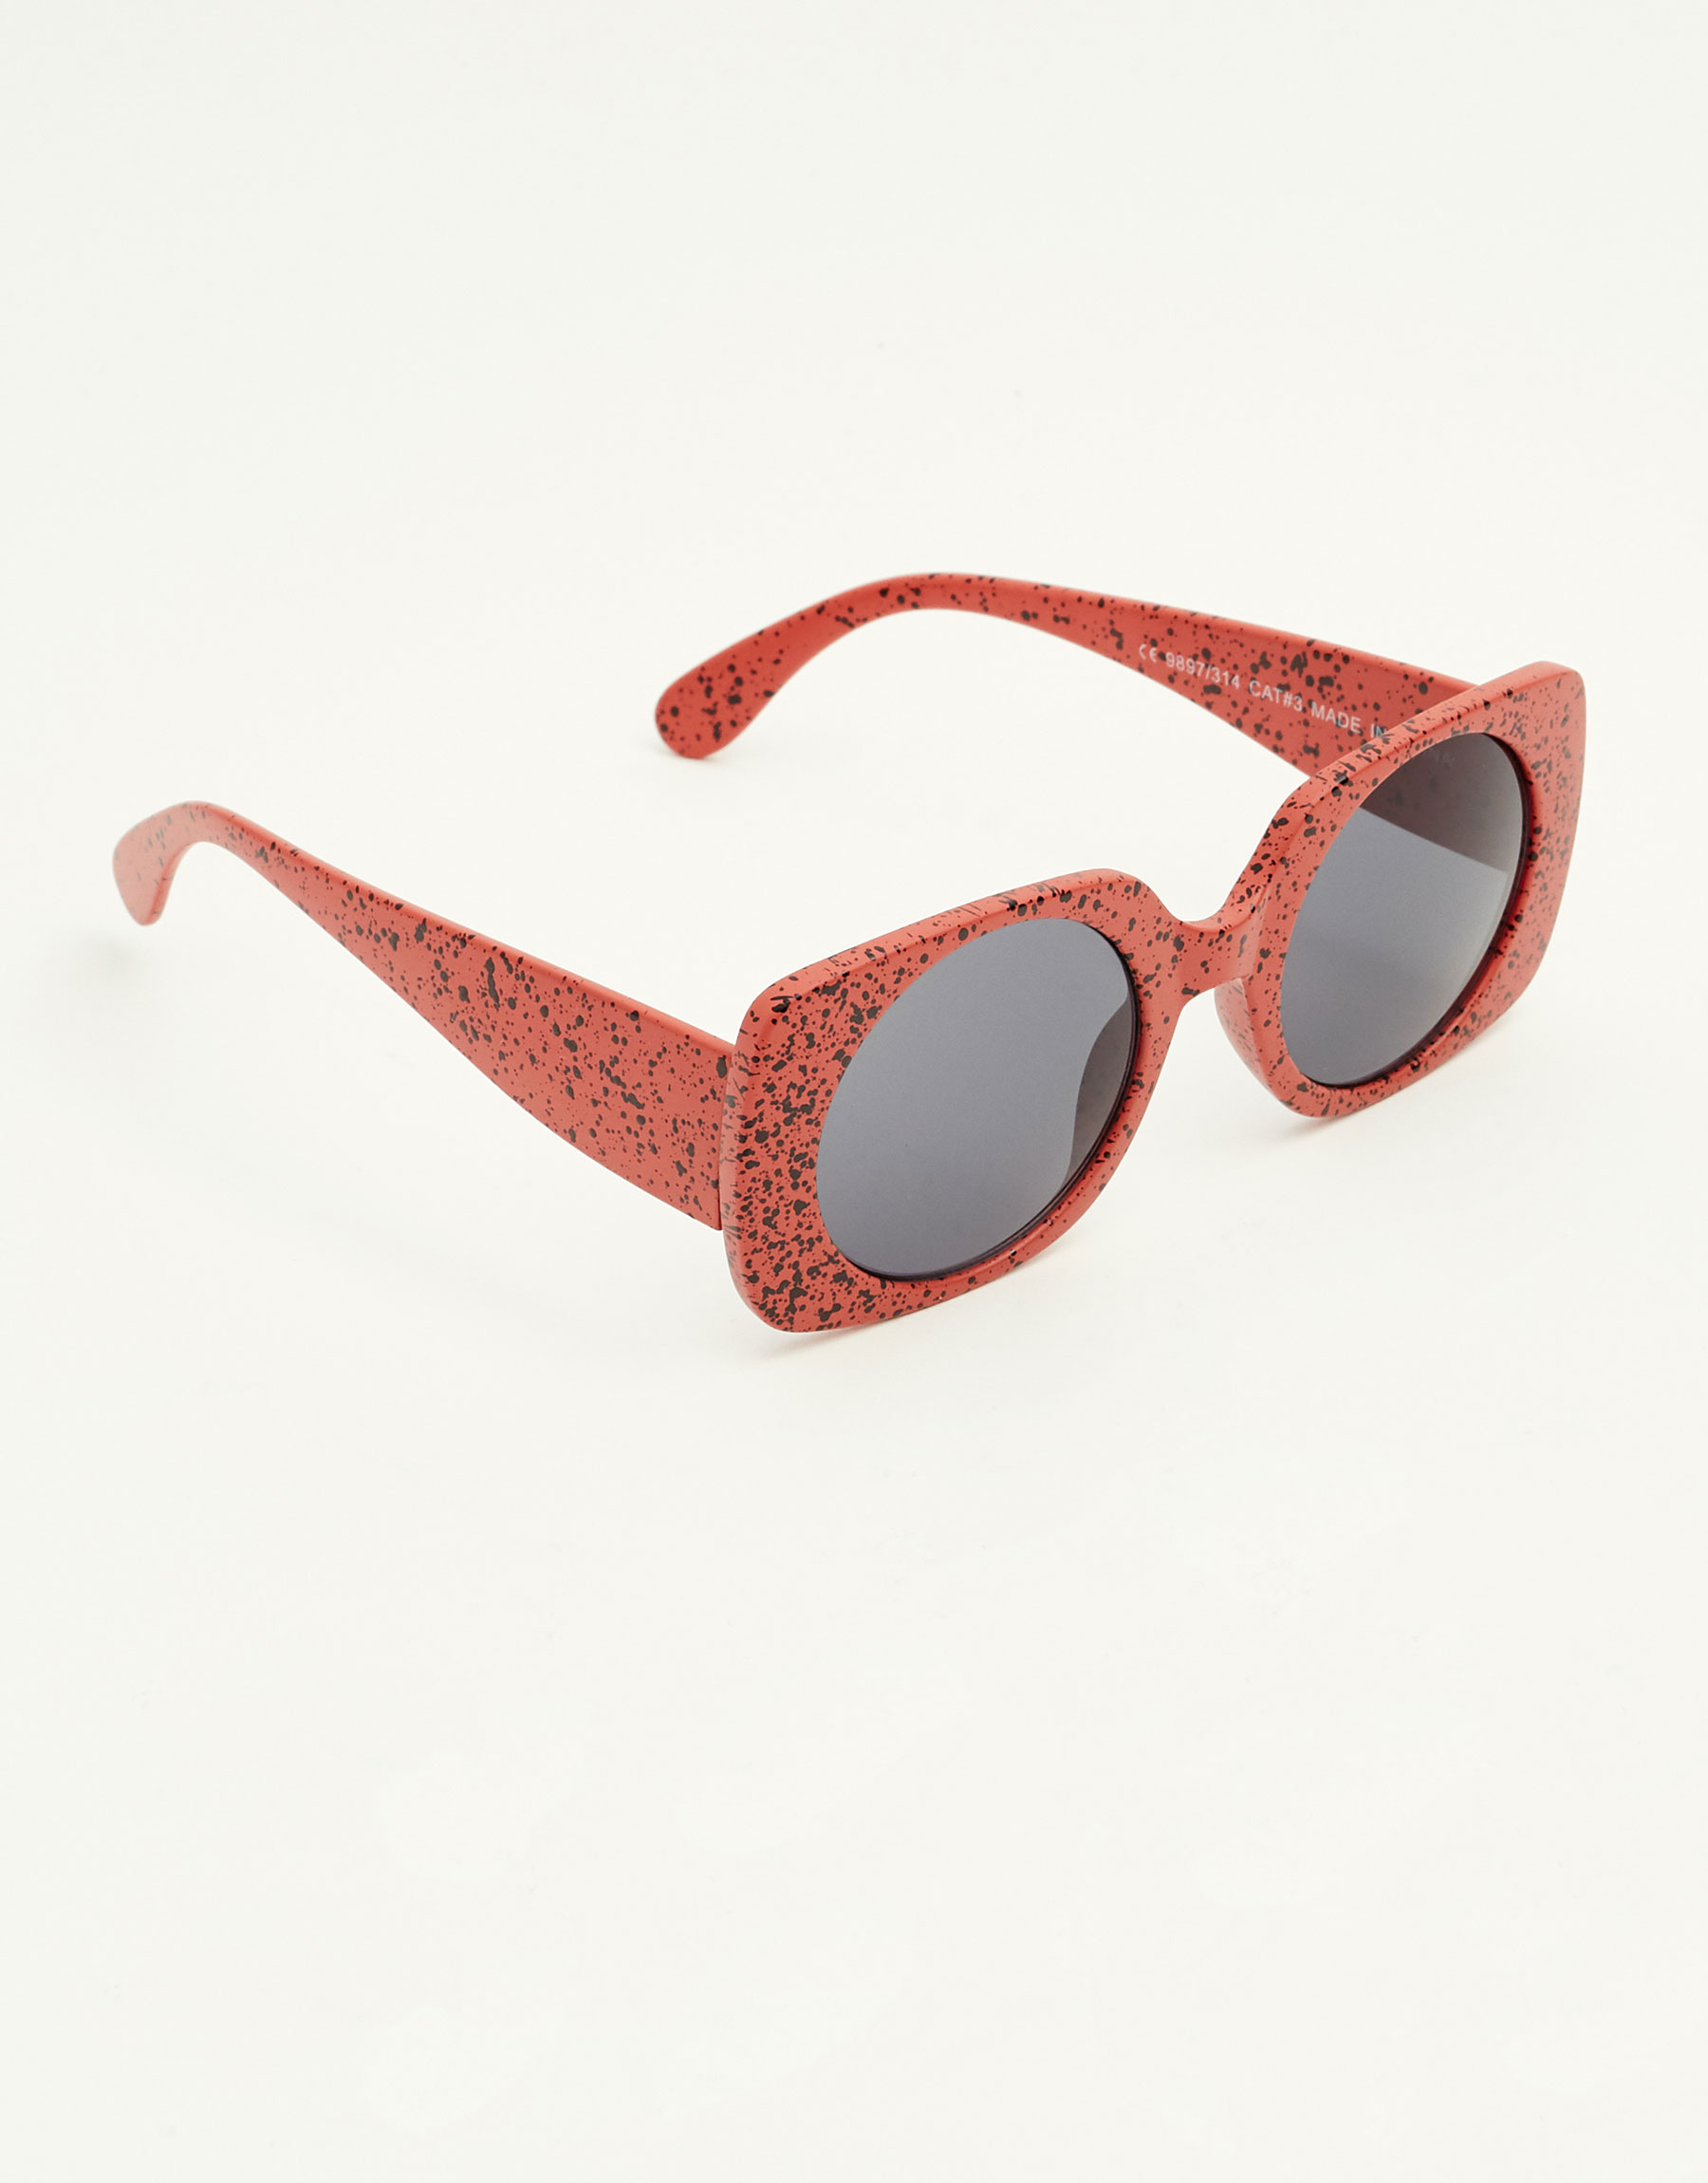 Square speckled sunglasses